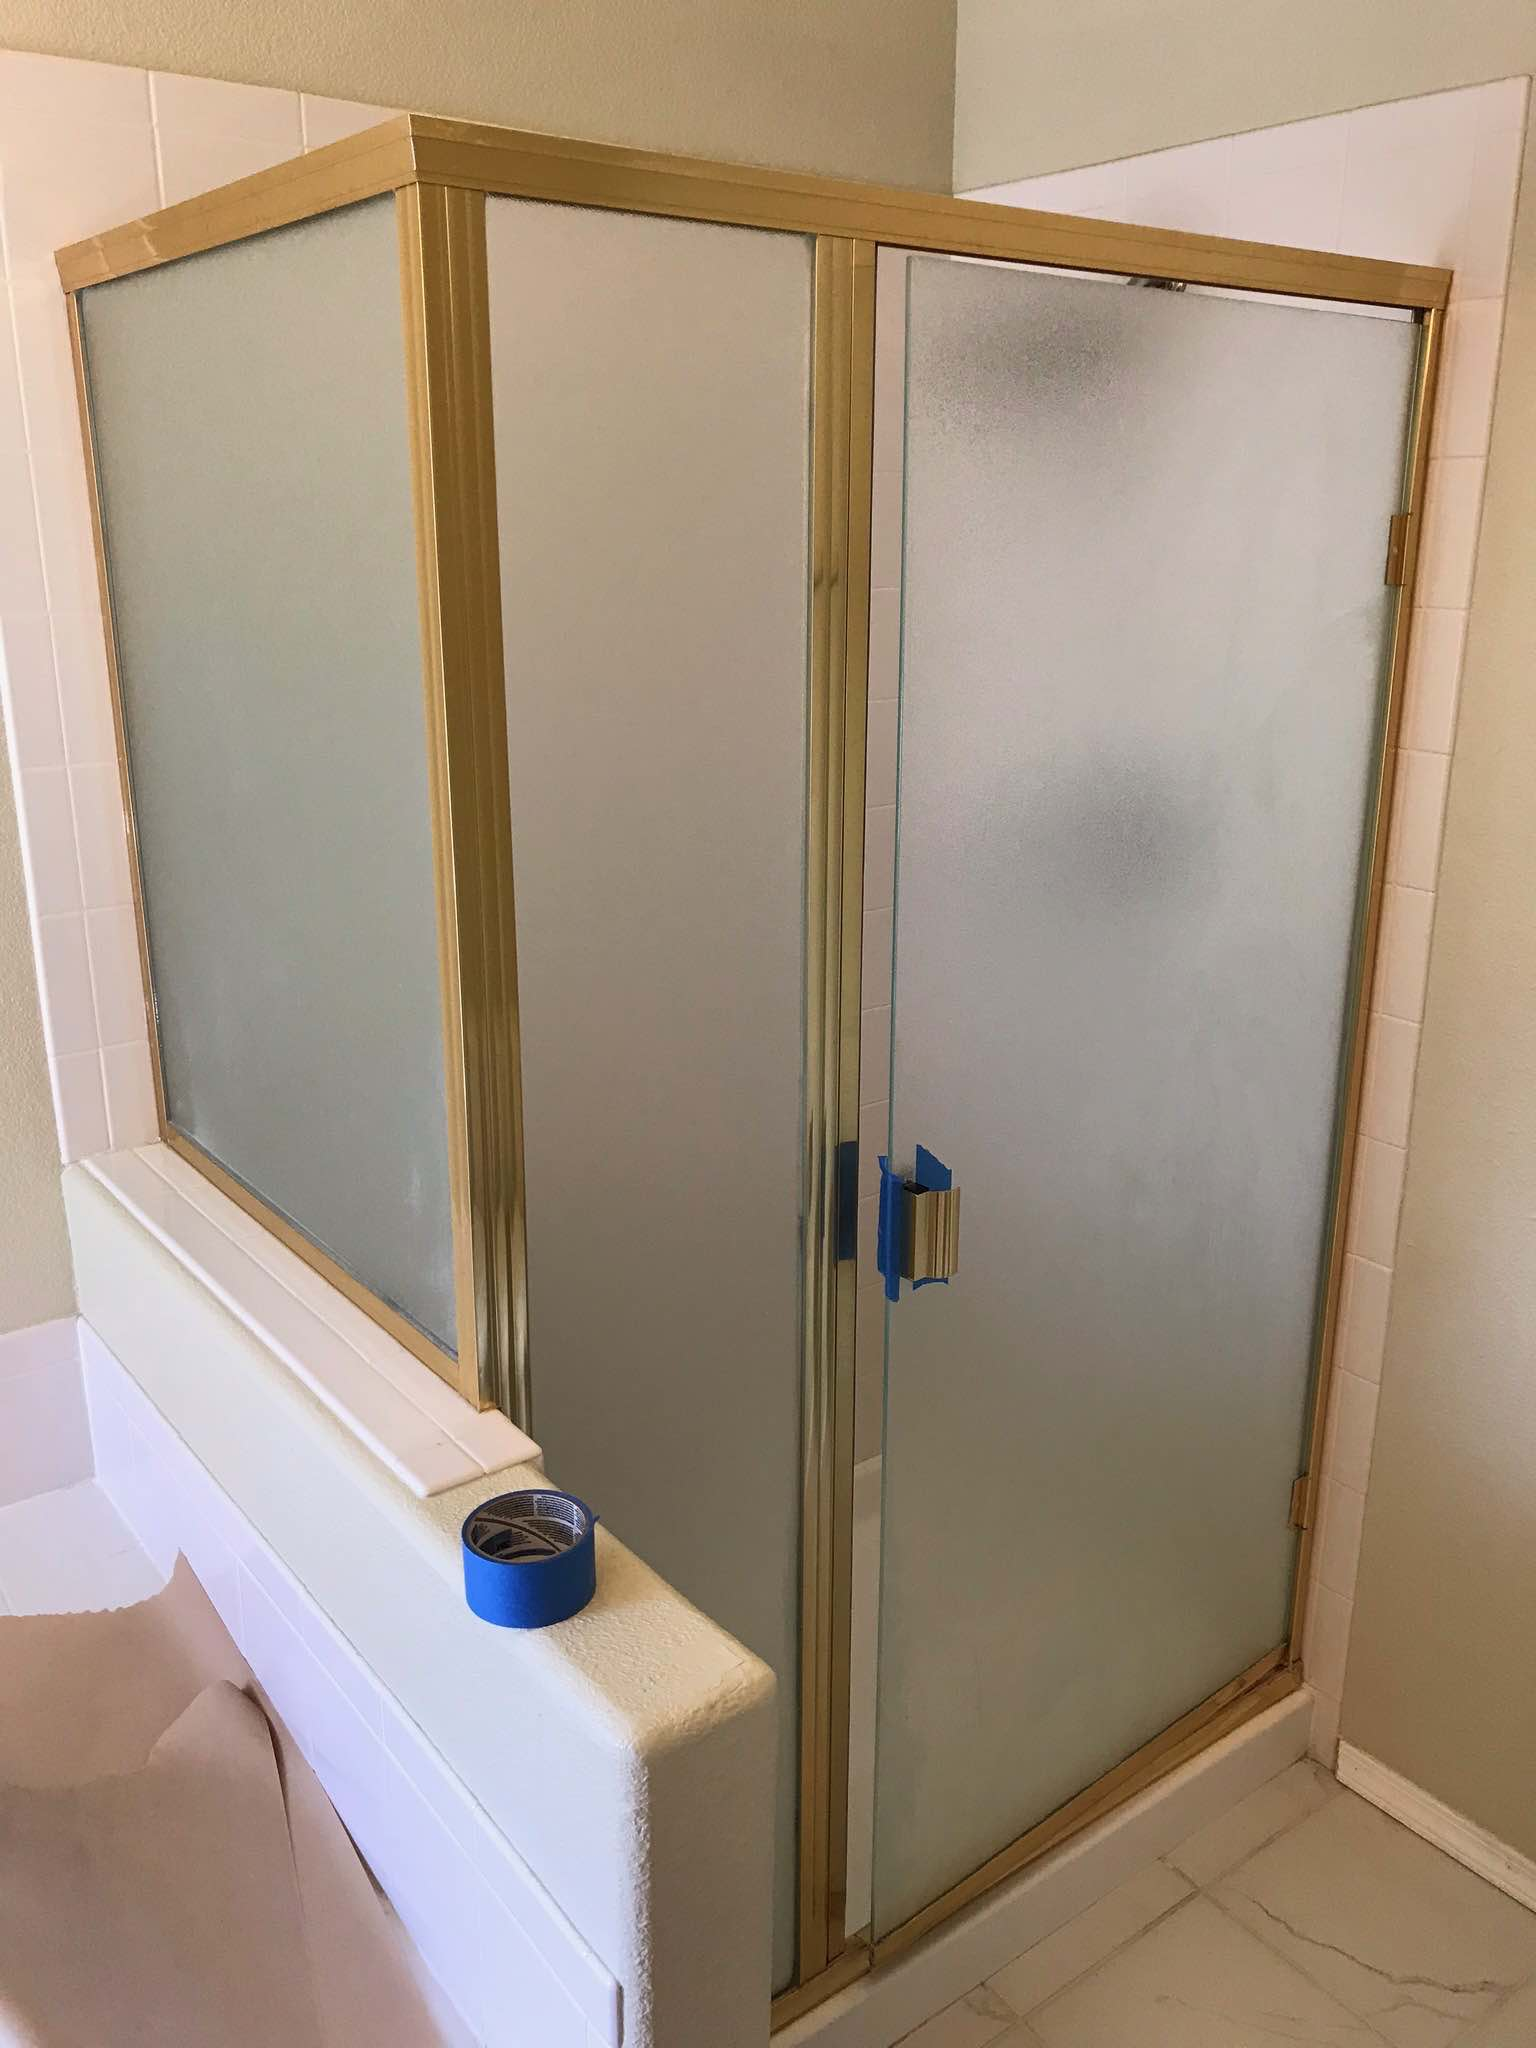 Diy Picture Frame Glass How To Paint A Brass Shower Frame For 30 Shower Door Diy